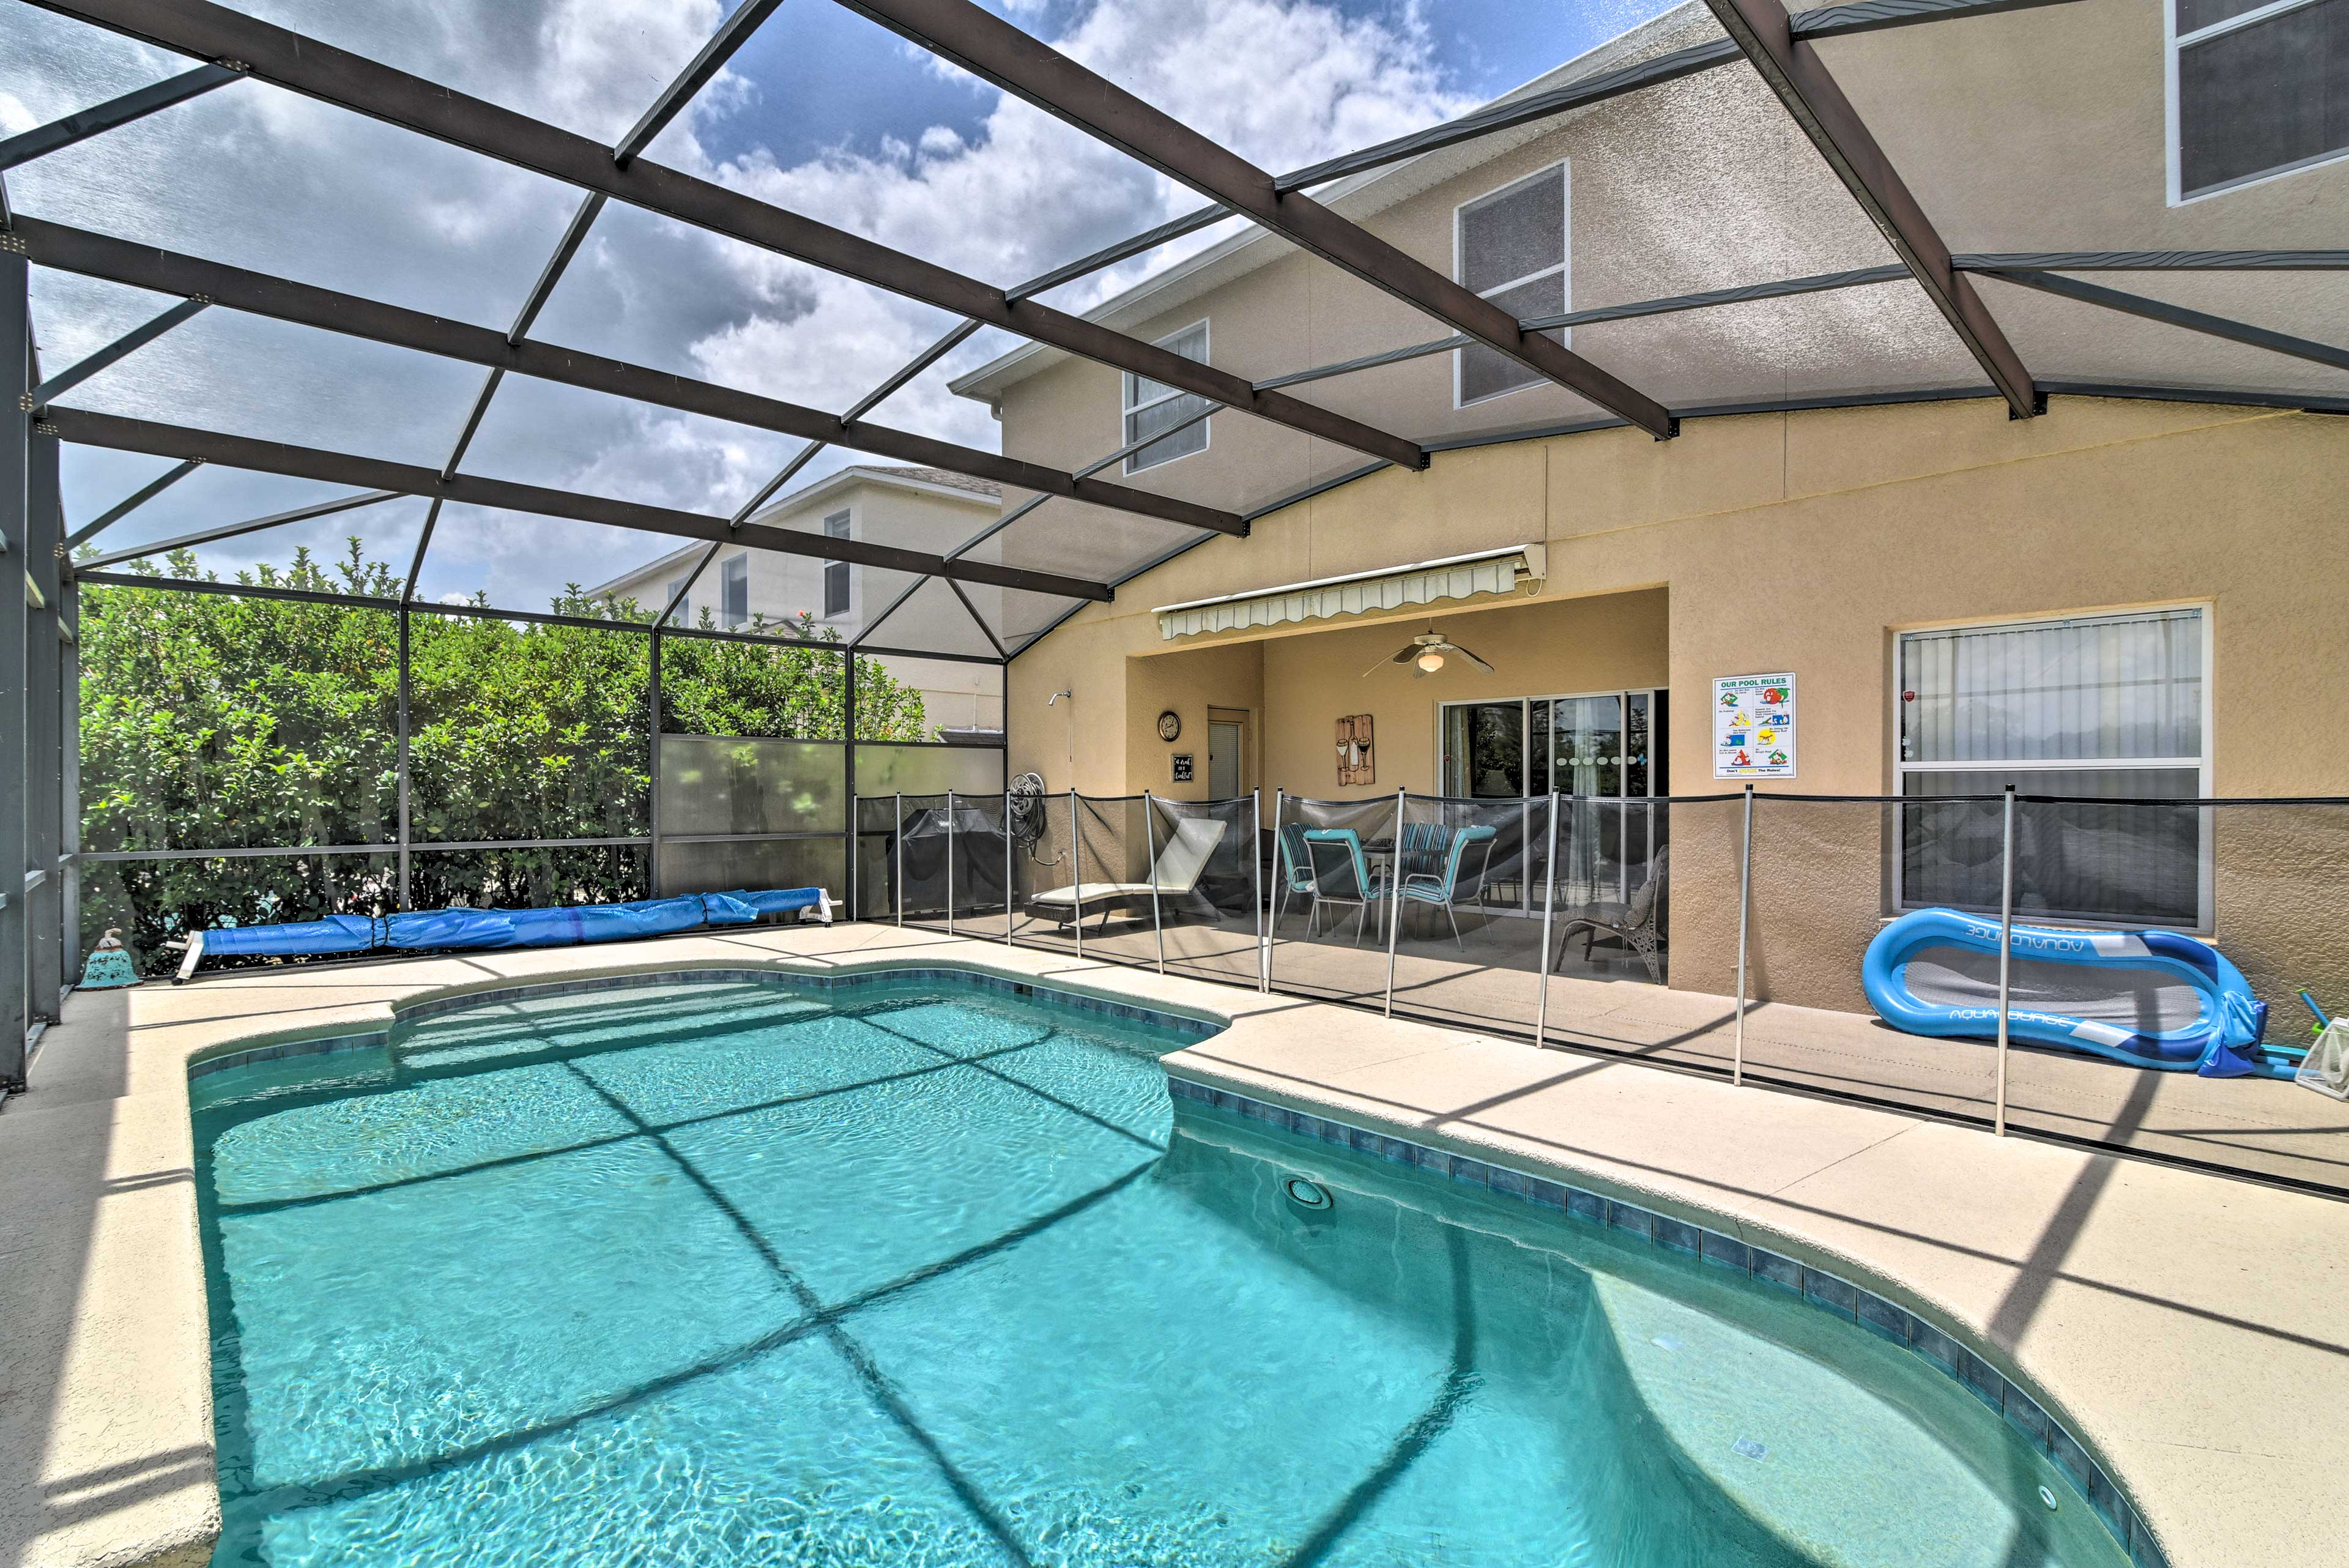 Adventure awaits at this 4-bedroom, 3-bath vacation rental home in Davenport.